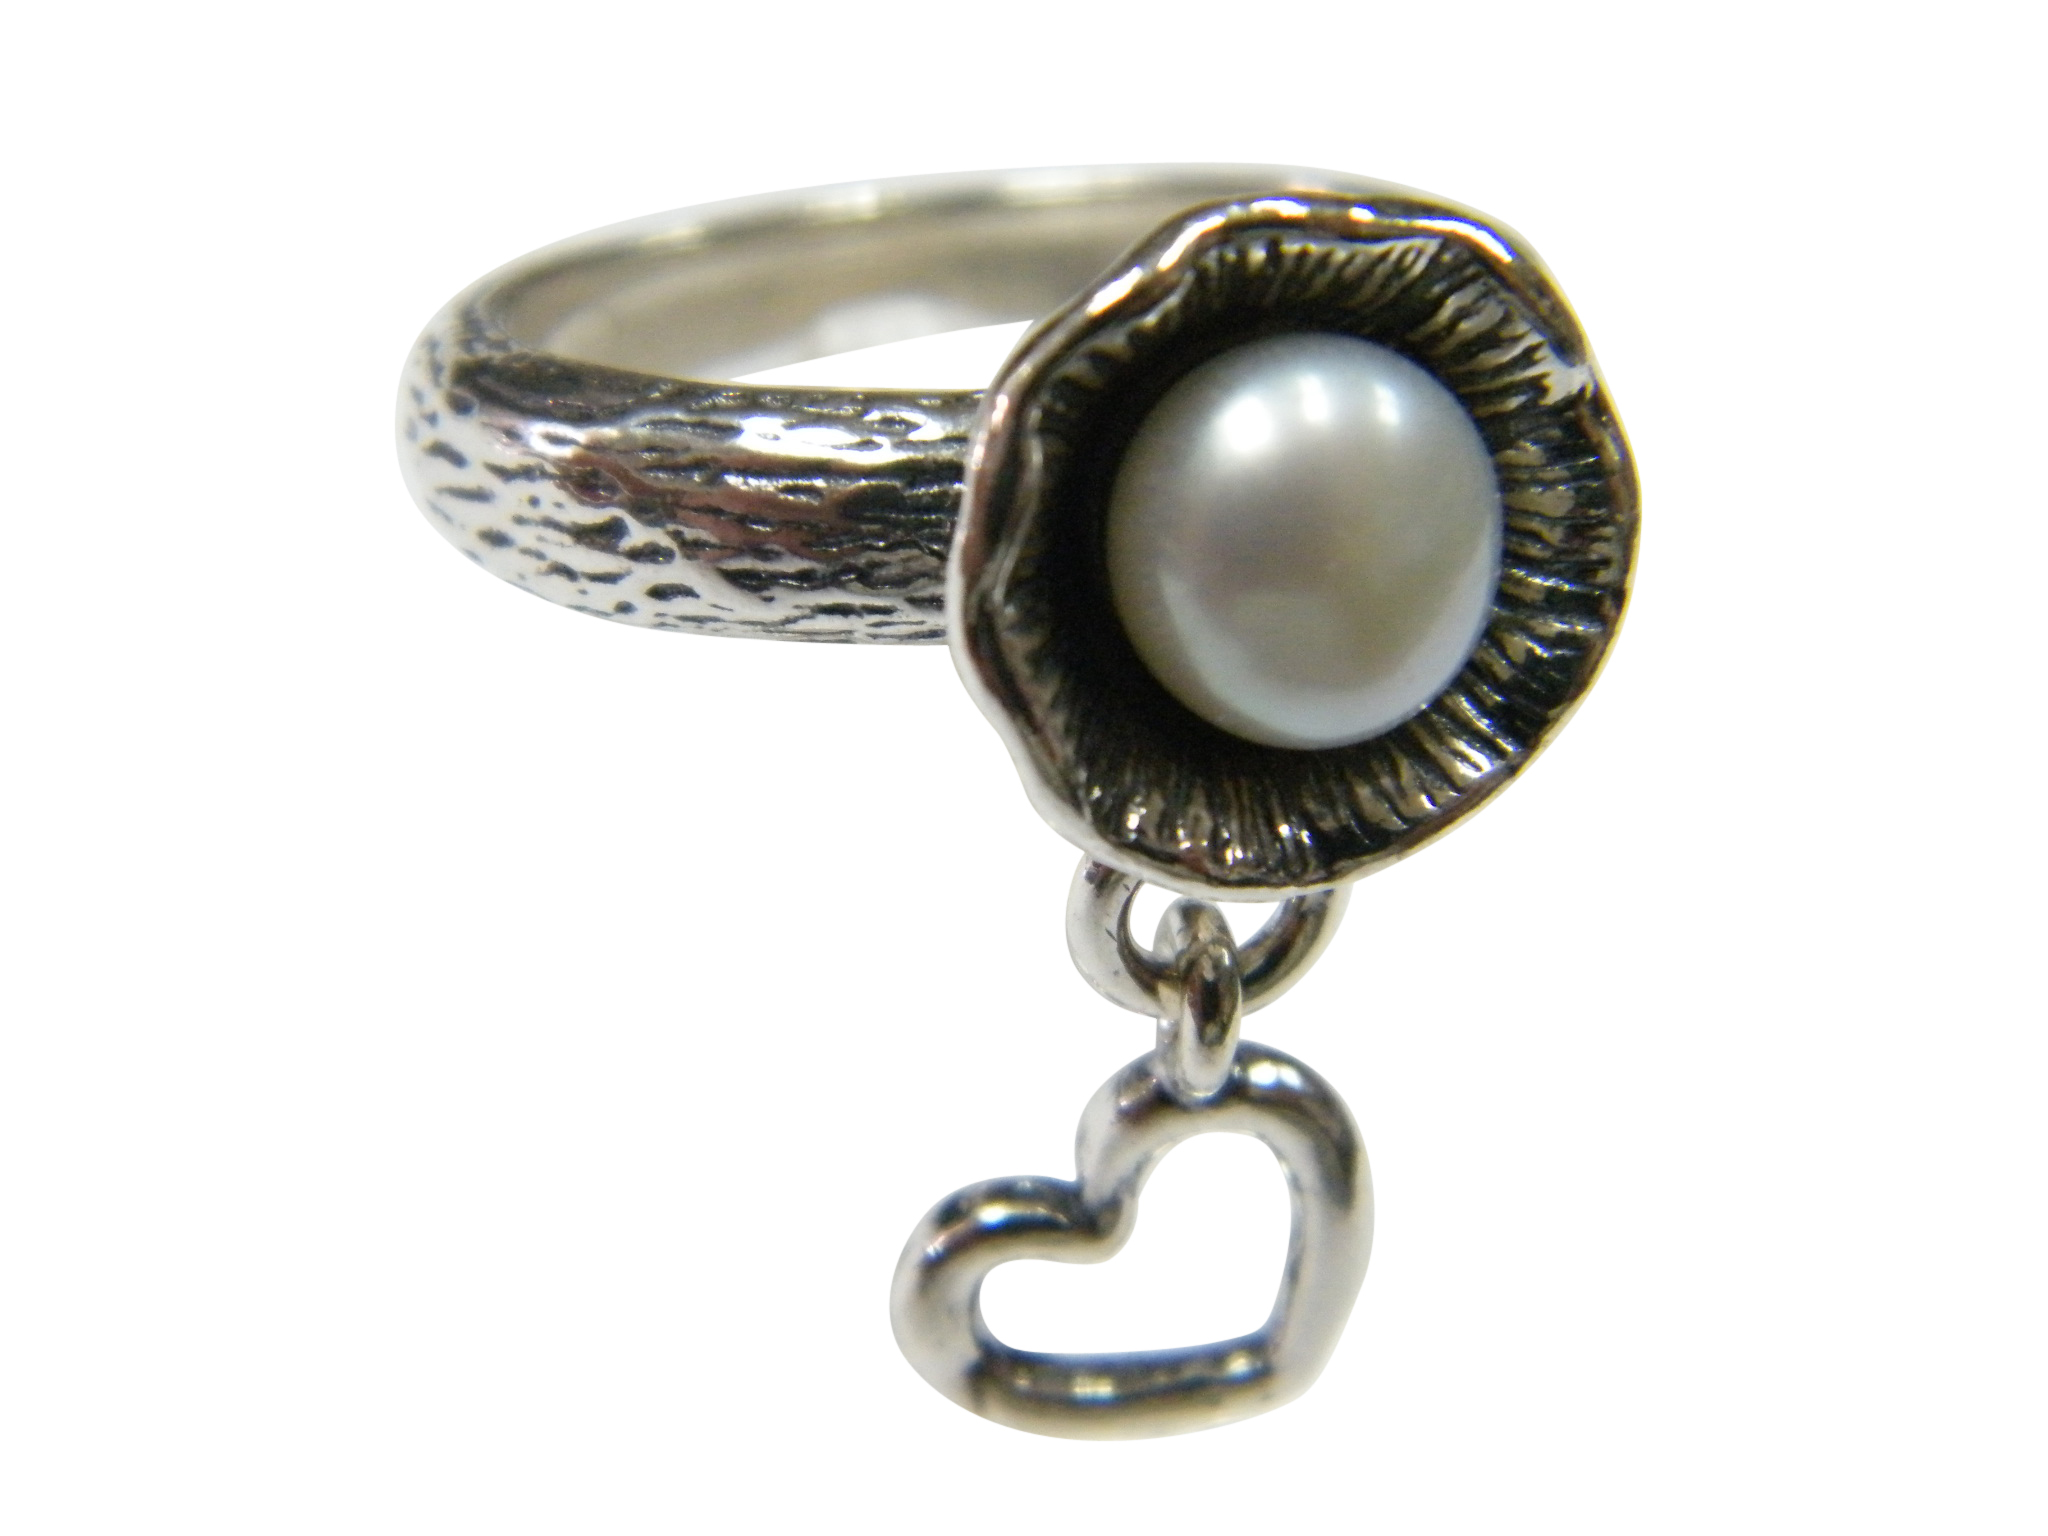 New-SHABLOOL-Ring-Handmade-Jewelry-White-Pearl-925-Sterling-Silver thumbnail 2